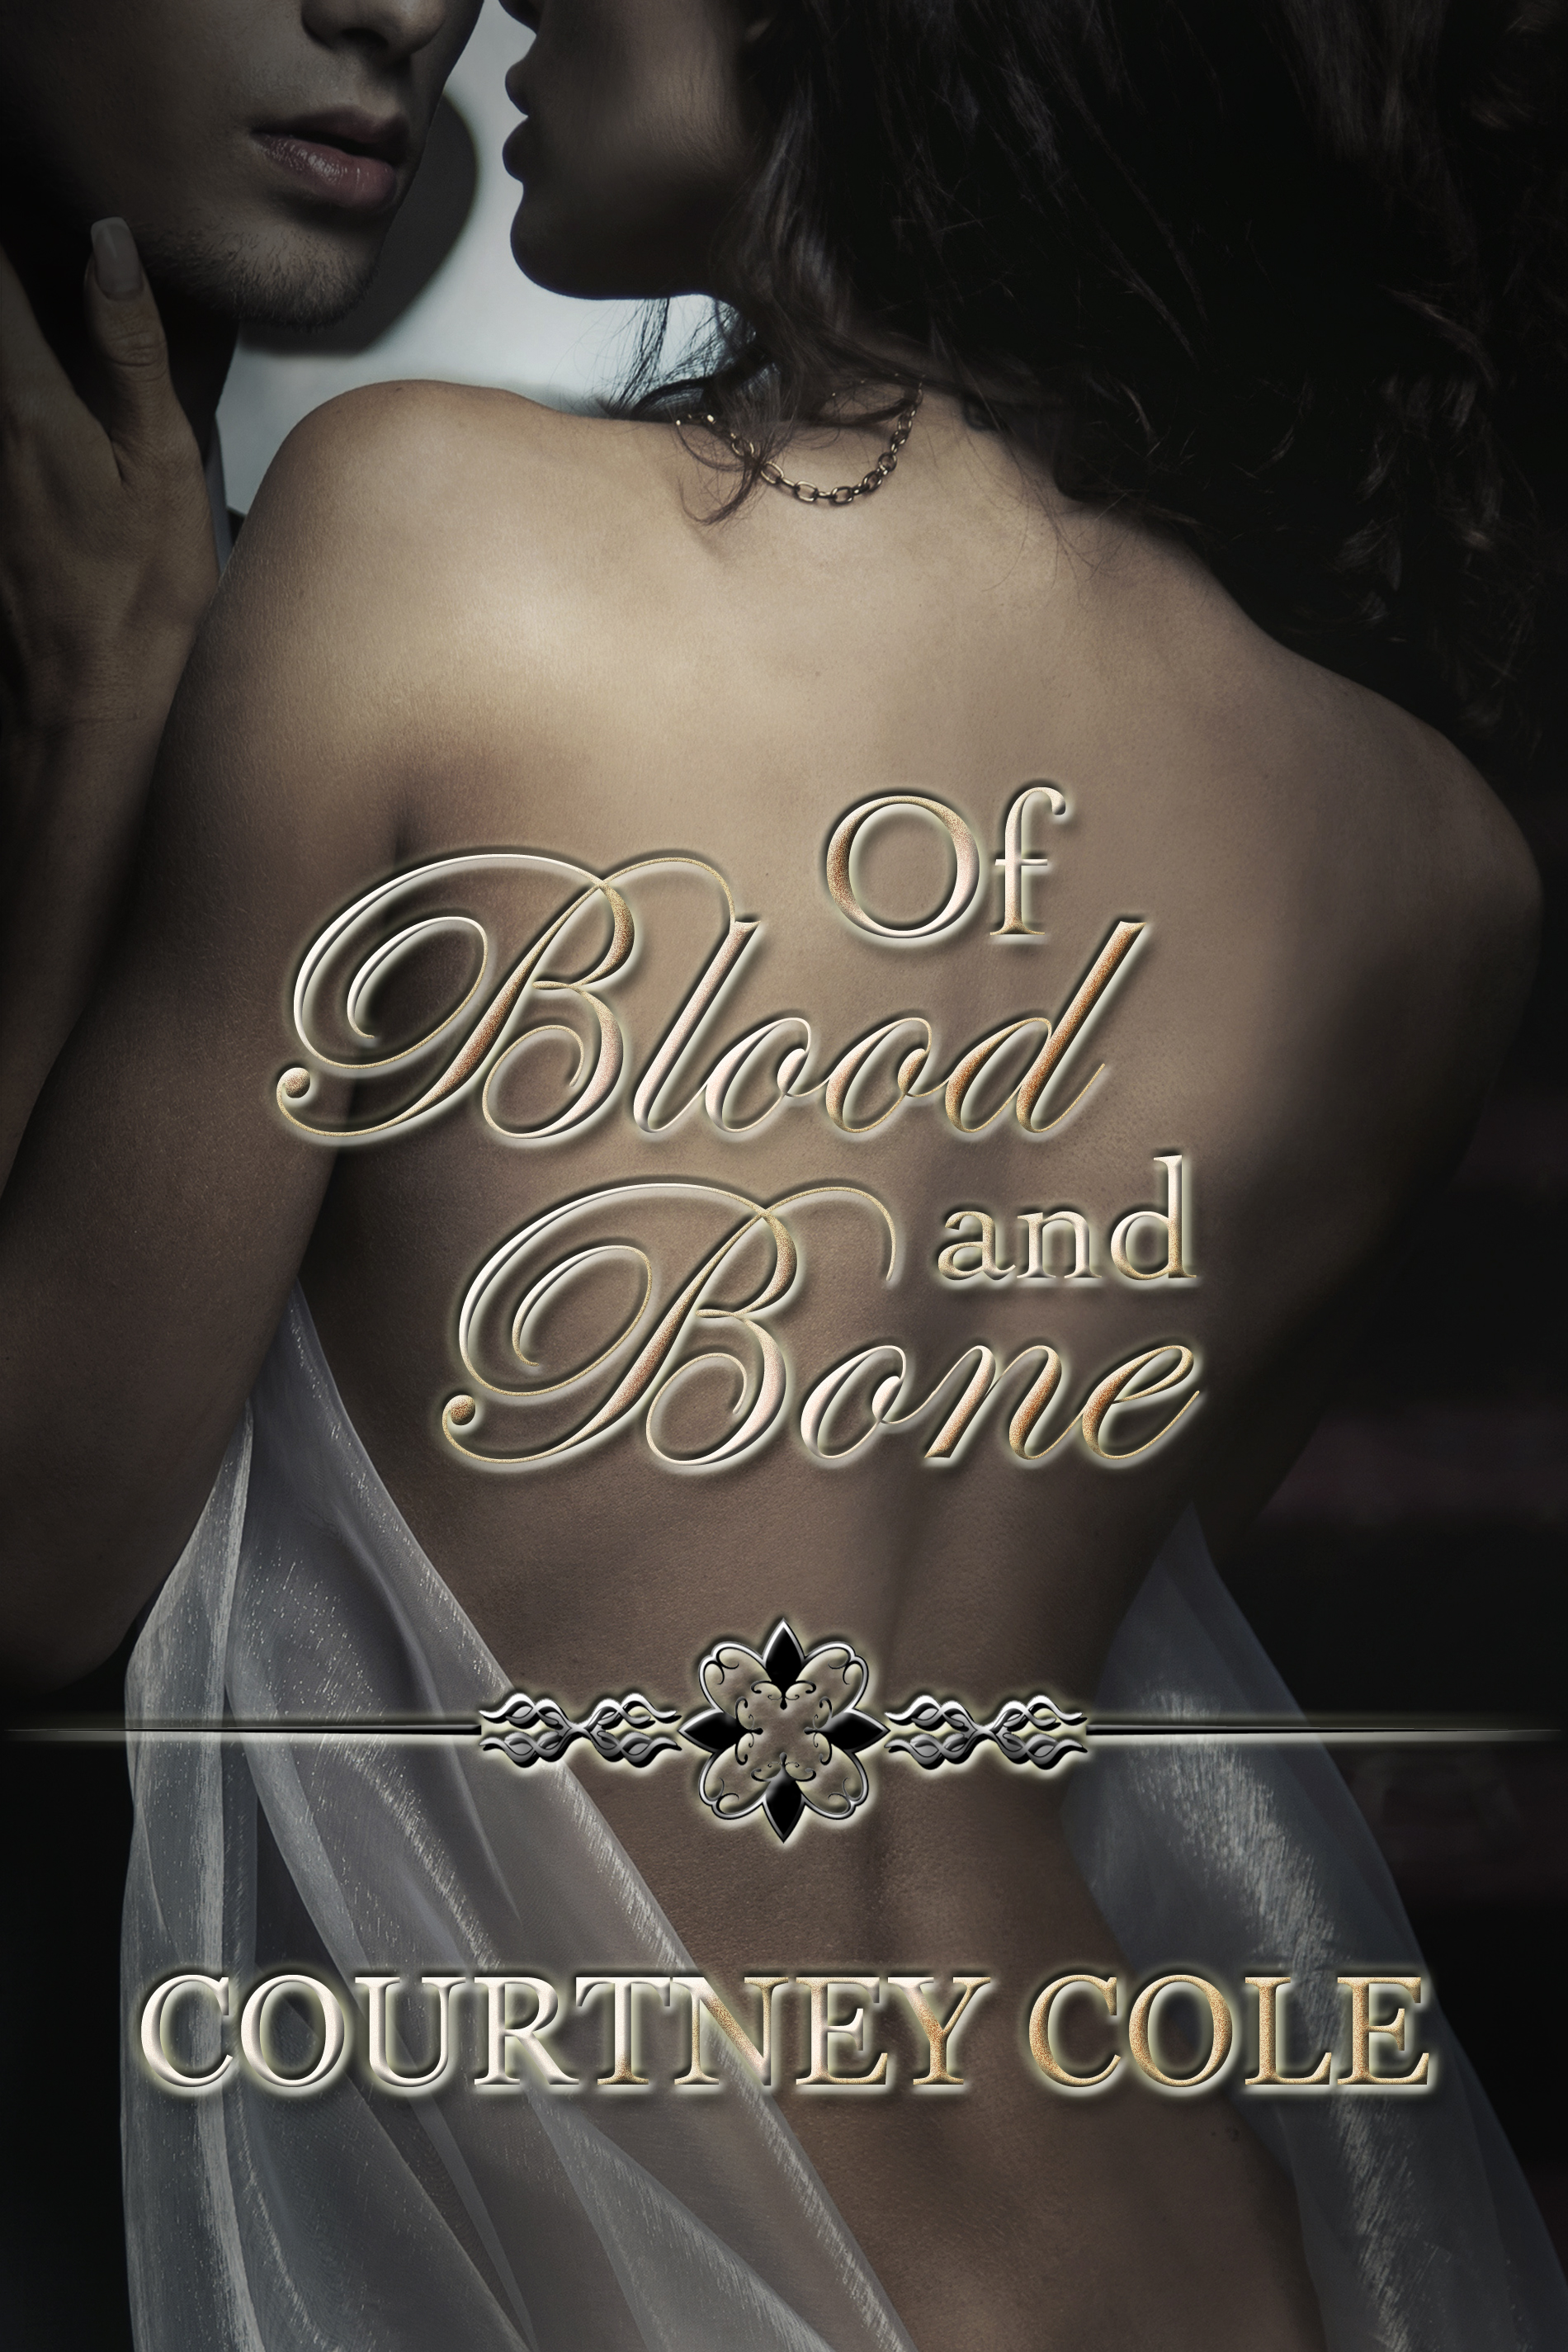 http://courtneycolewrites.files.wordpress.com/2012/10/ofbloodandbone-revised.jpg